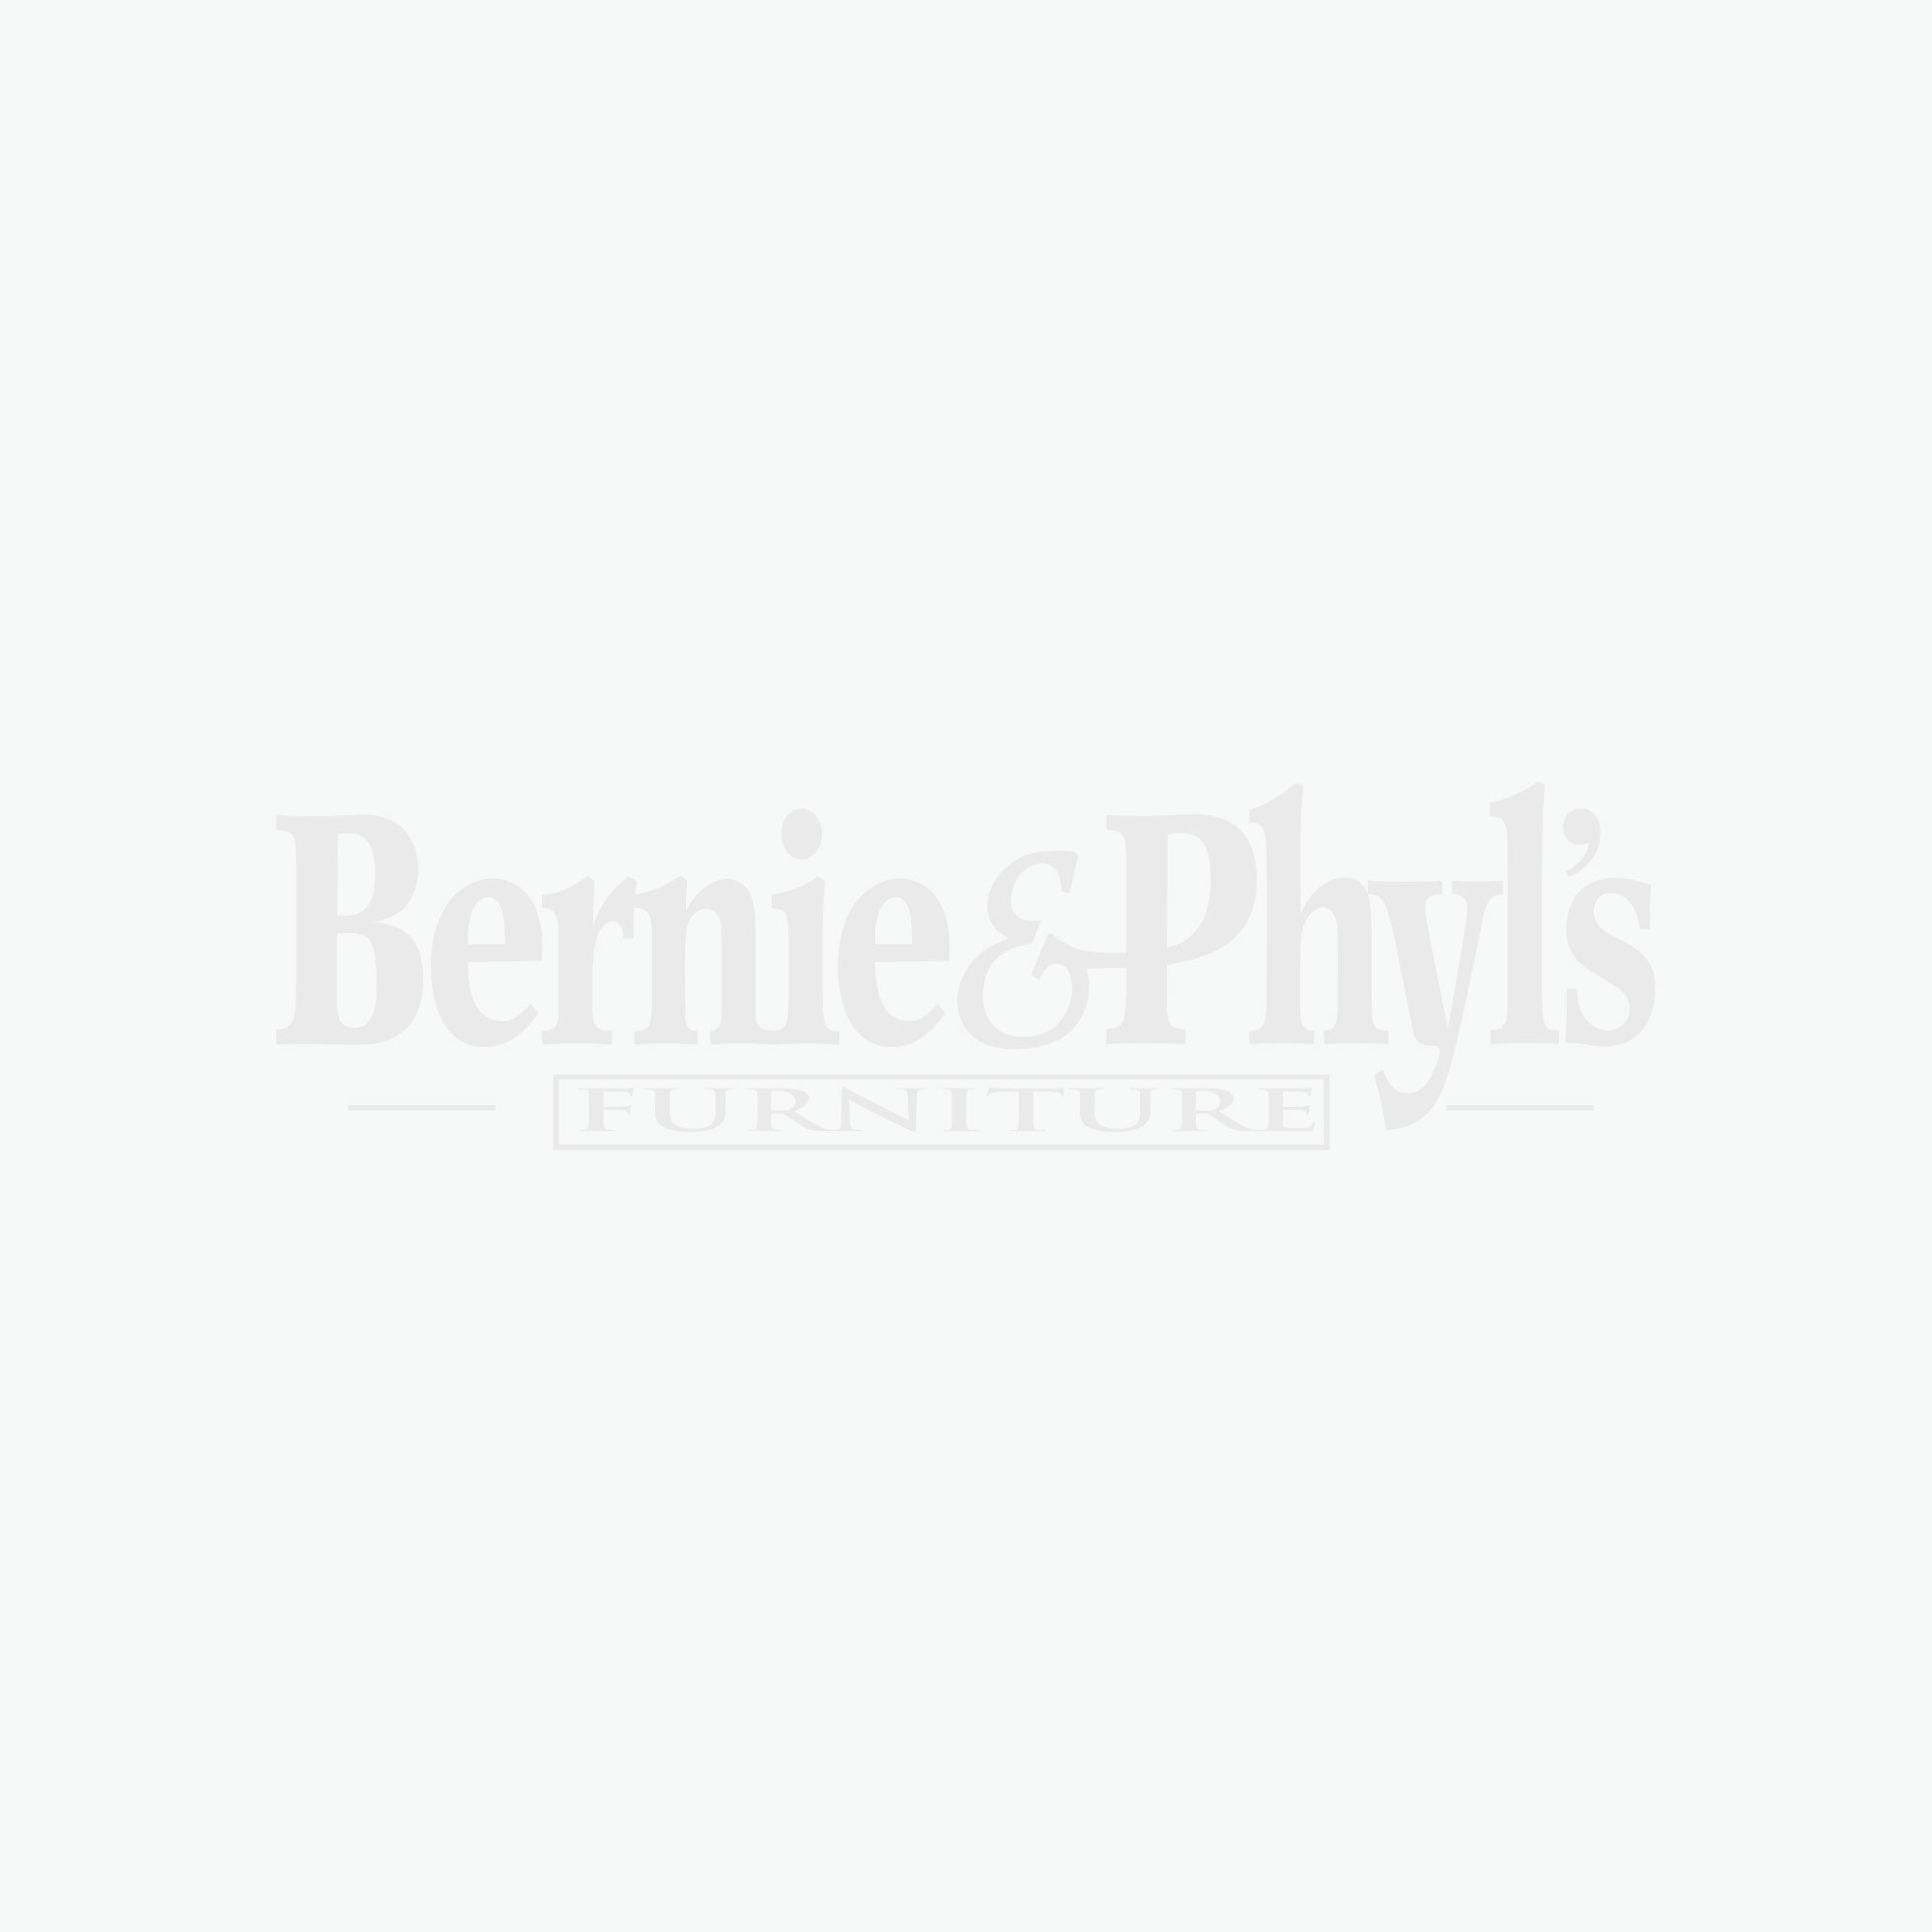 Moriann Upholstered Barstool - Two-tone - (Set of 1) - D608-624 by Ashley Furniture Signature Design